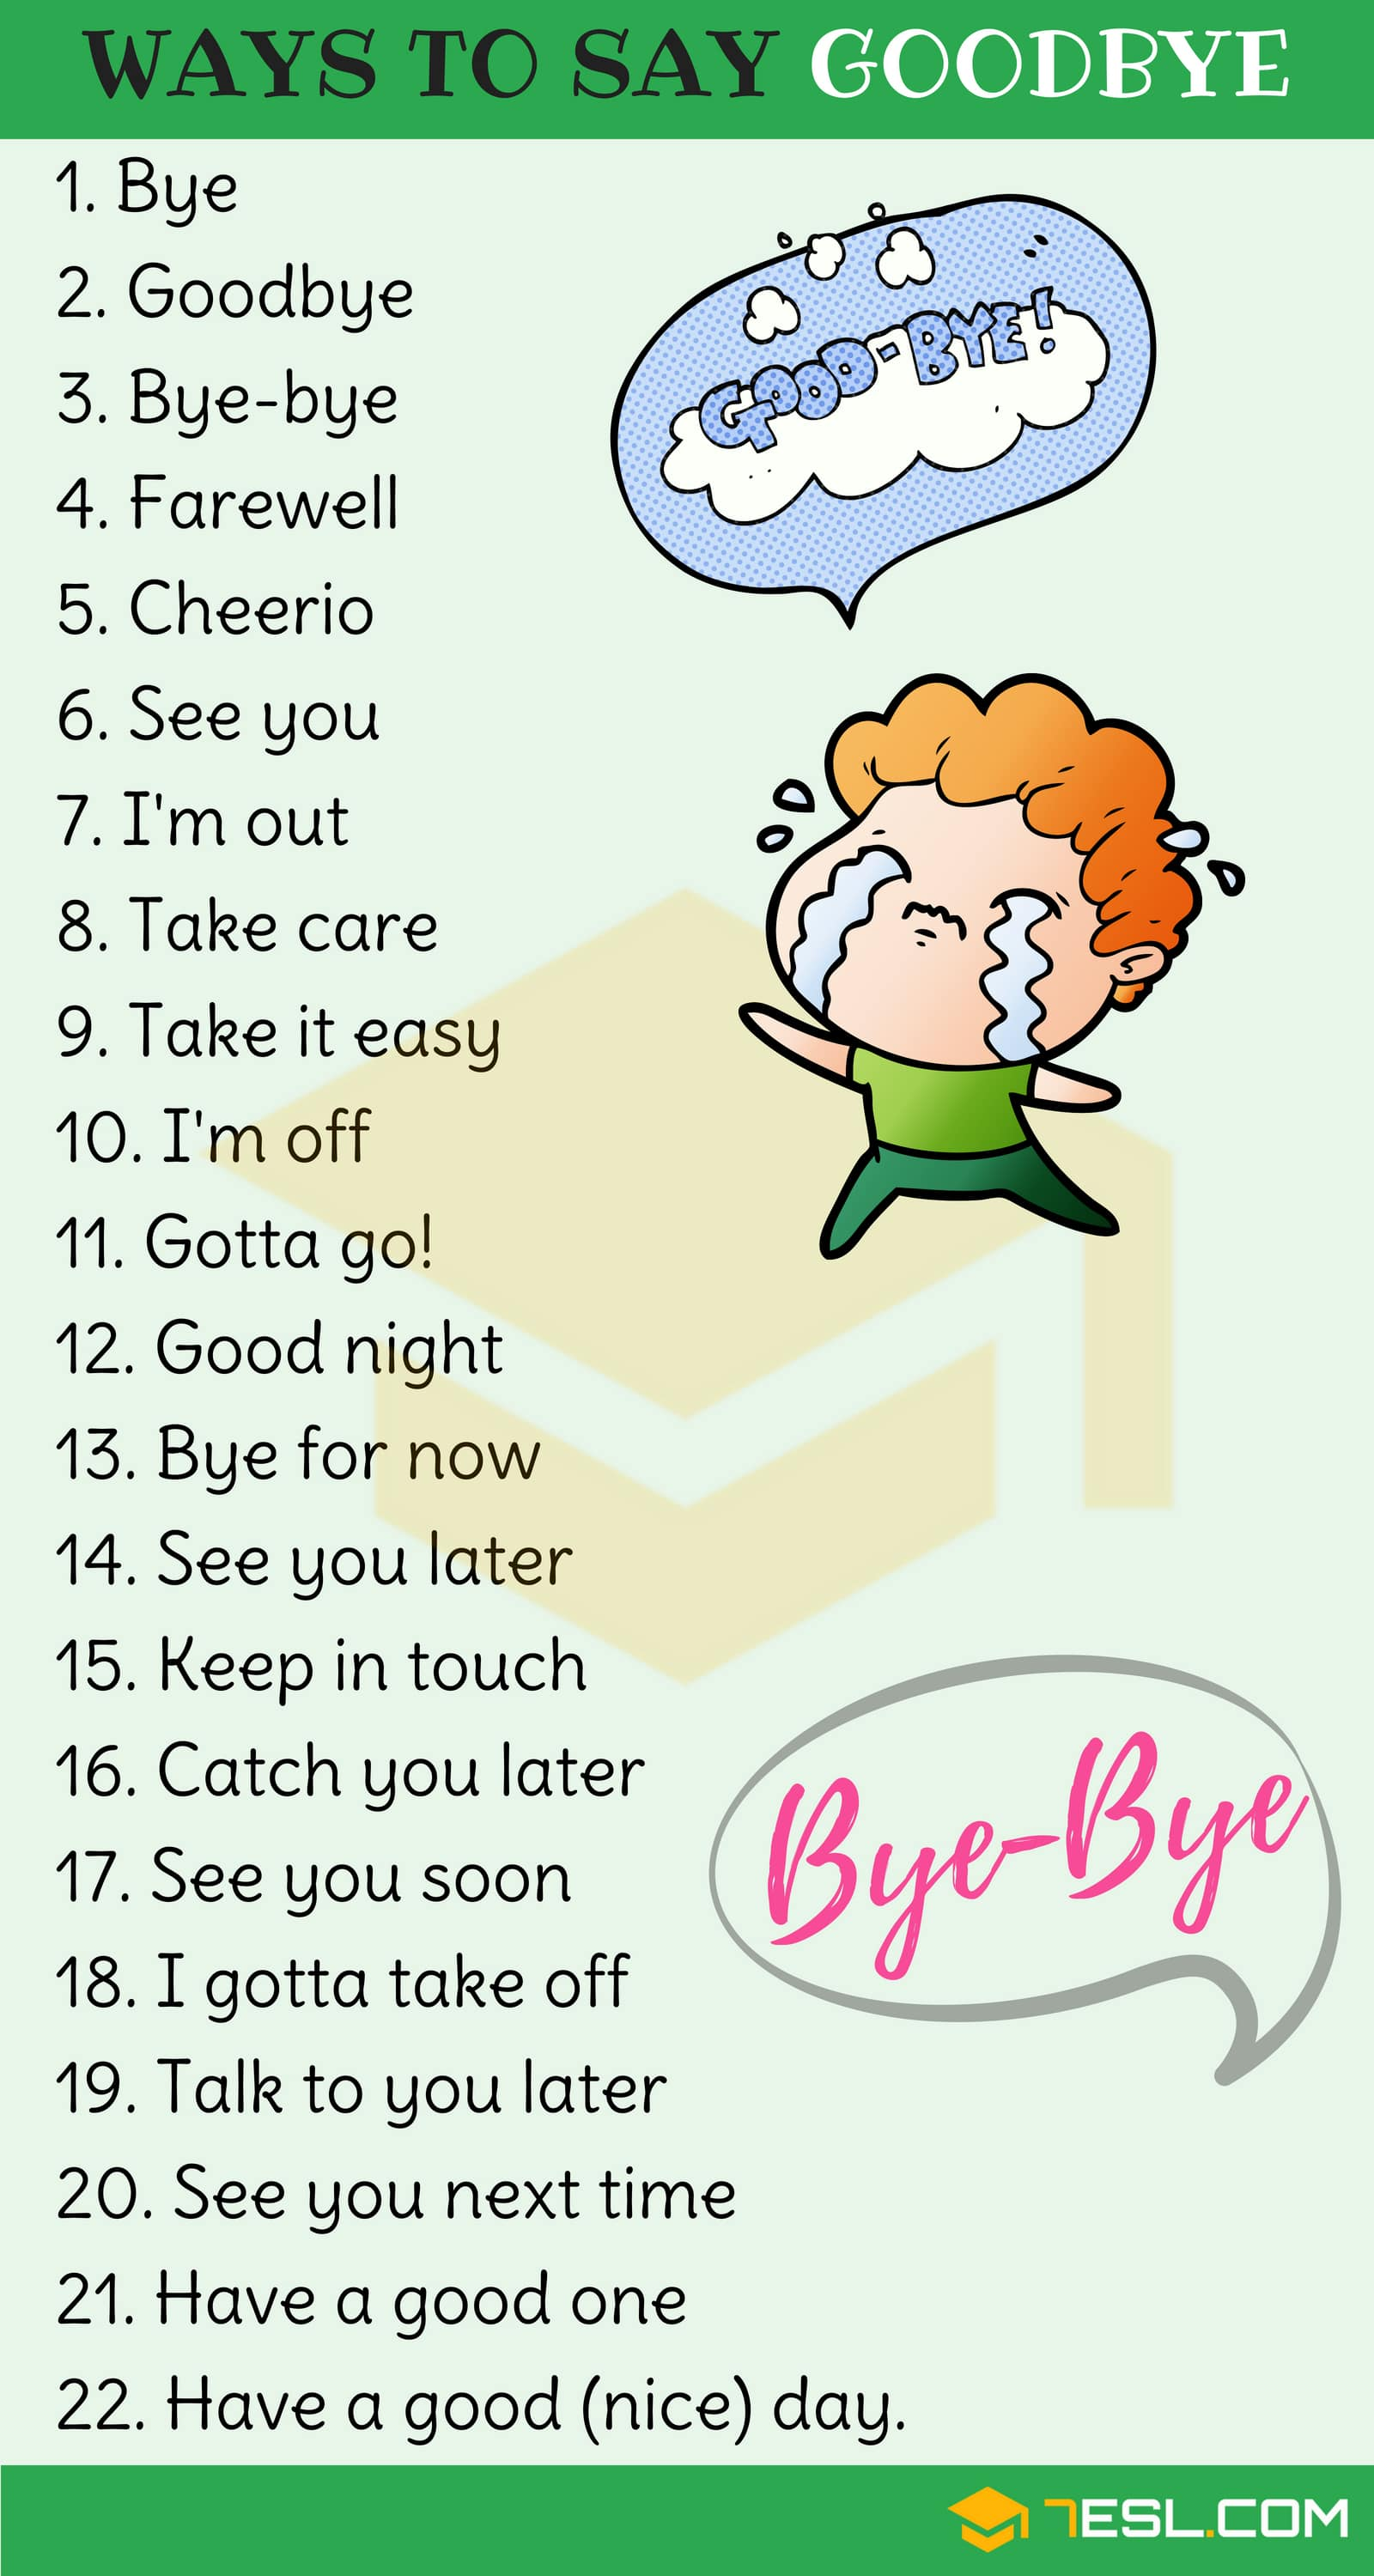 23 Ways to Say Goodbye in English | Goodbye Synonyms